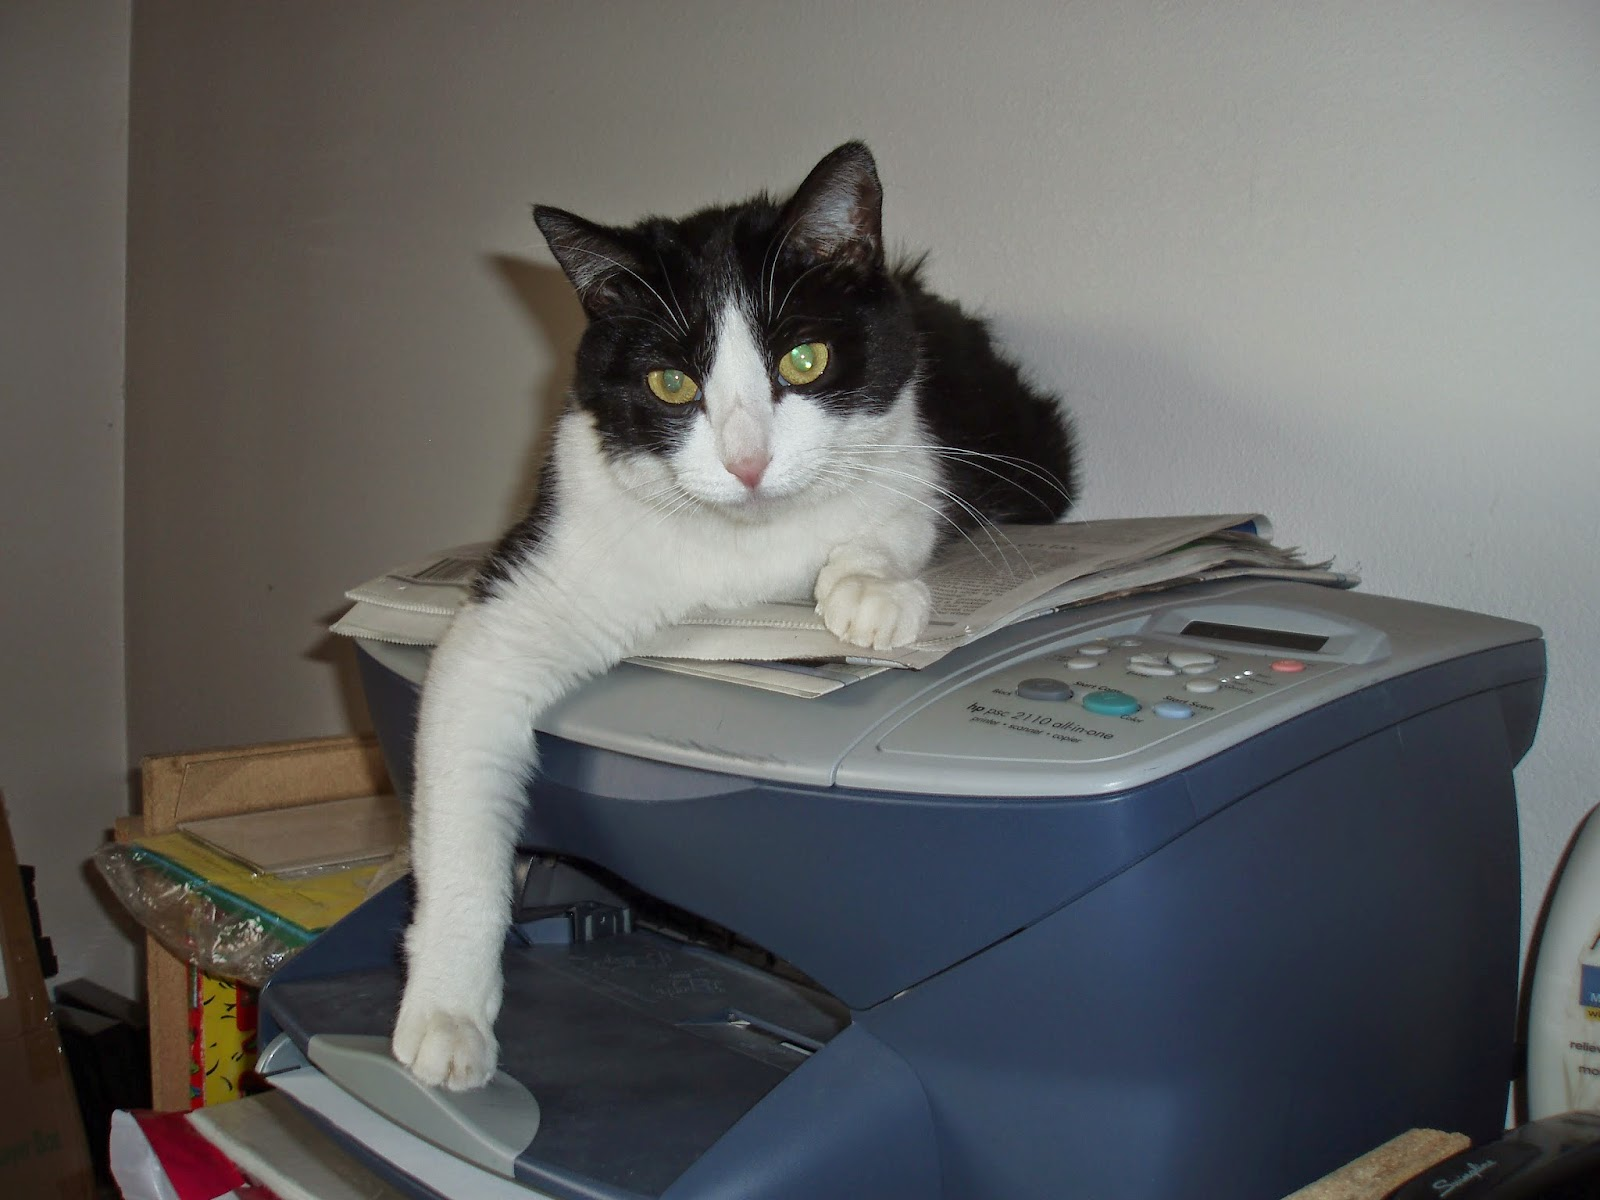 cat sleeping on scanner